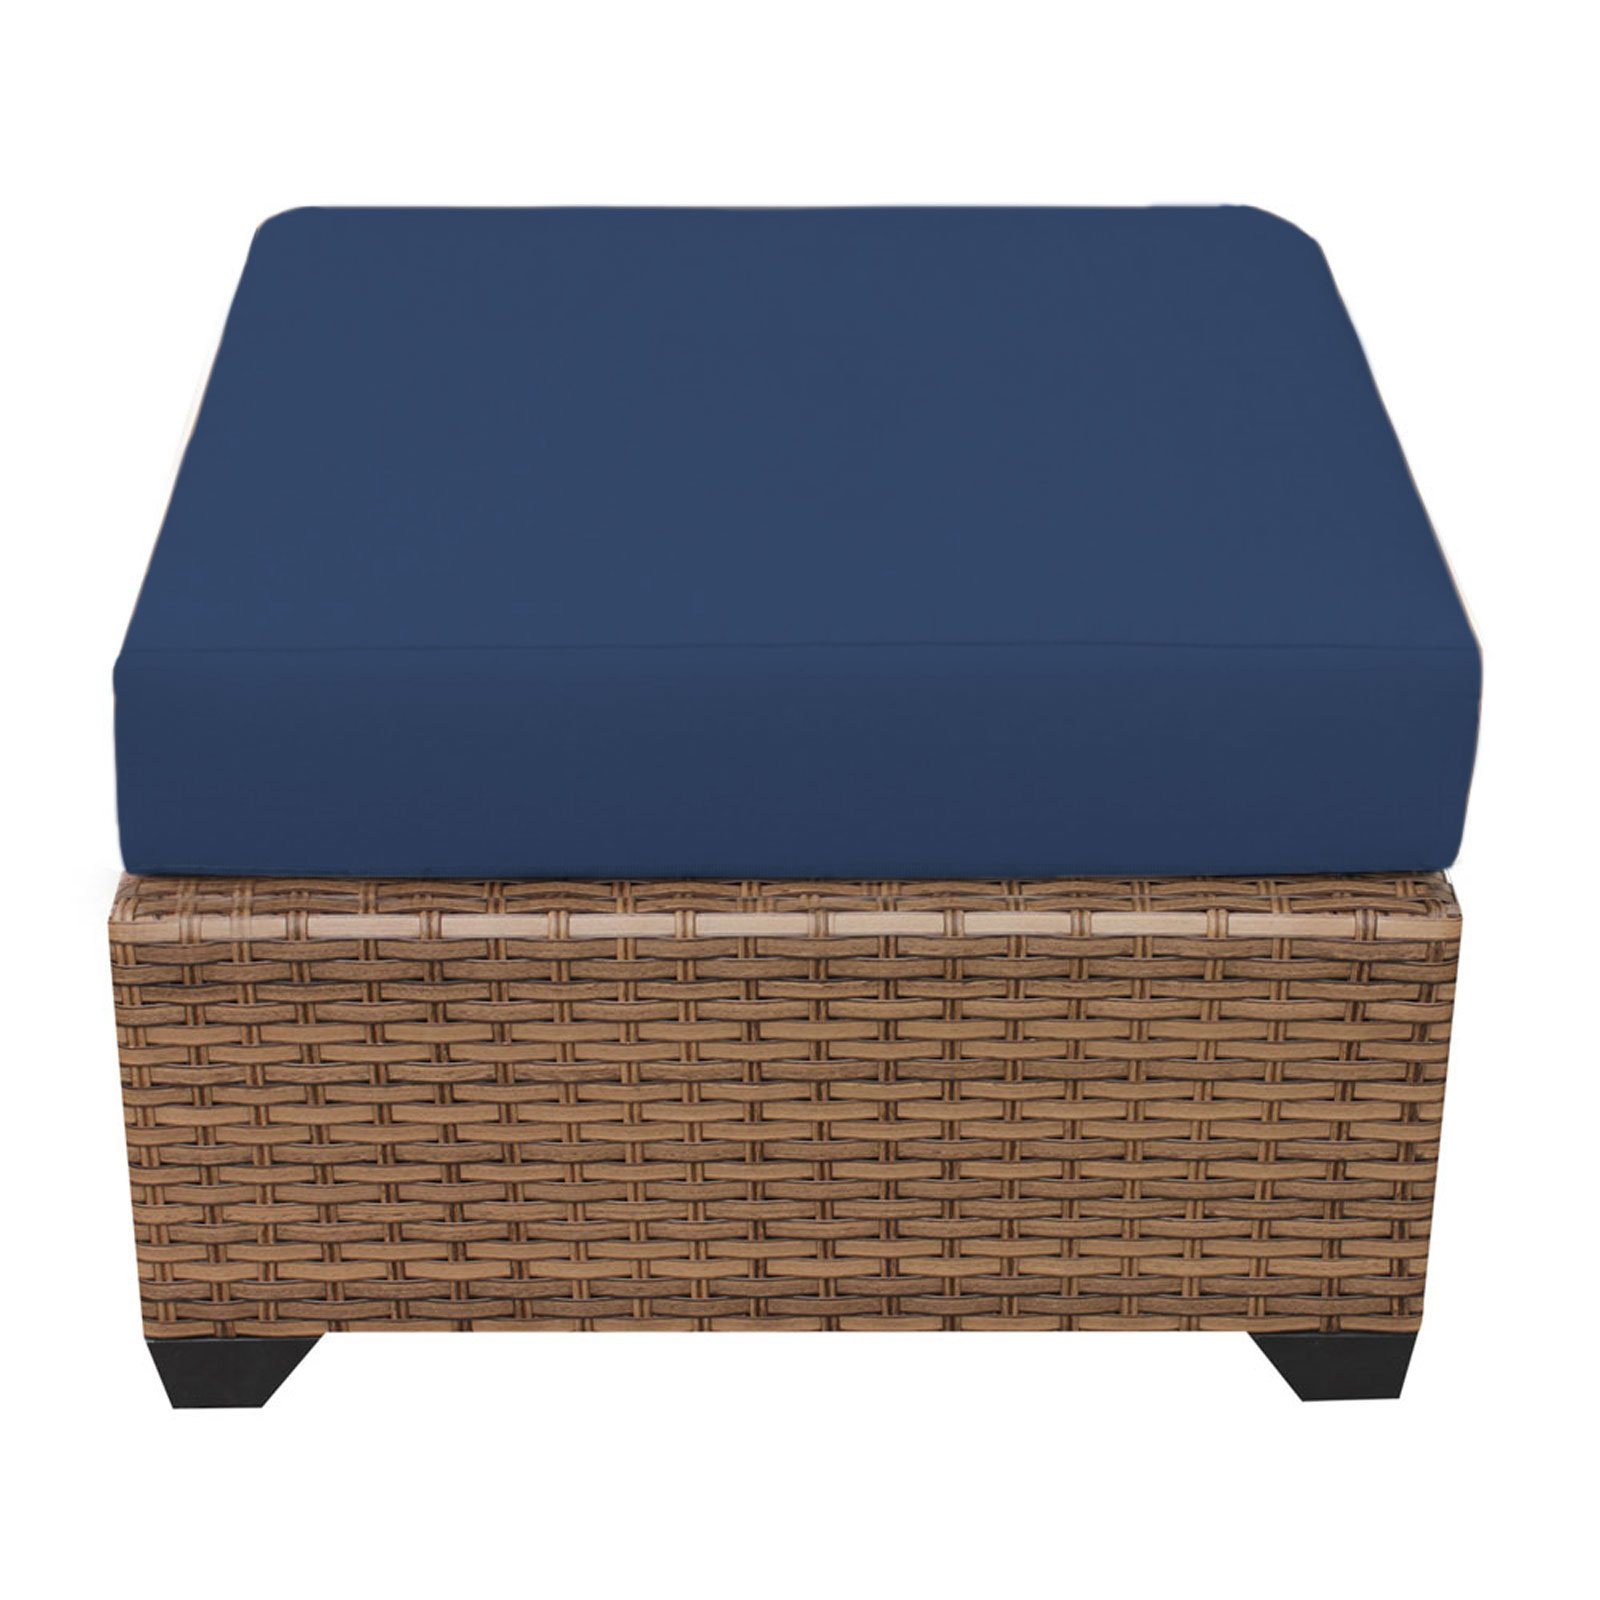 Avadi Outdoor Sofas & Ottomans 3 Piece Set Intended For Fashionable Waterbury Ottoman With Cushion (View 14 of 25)